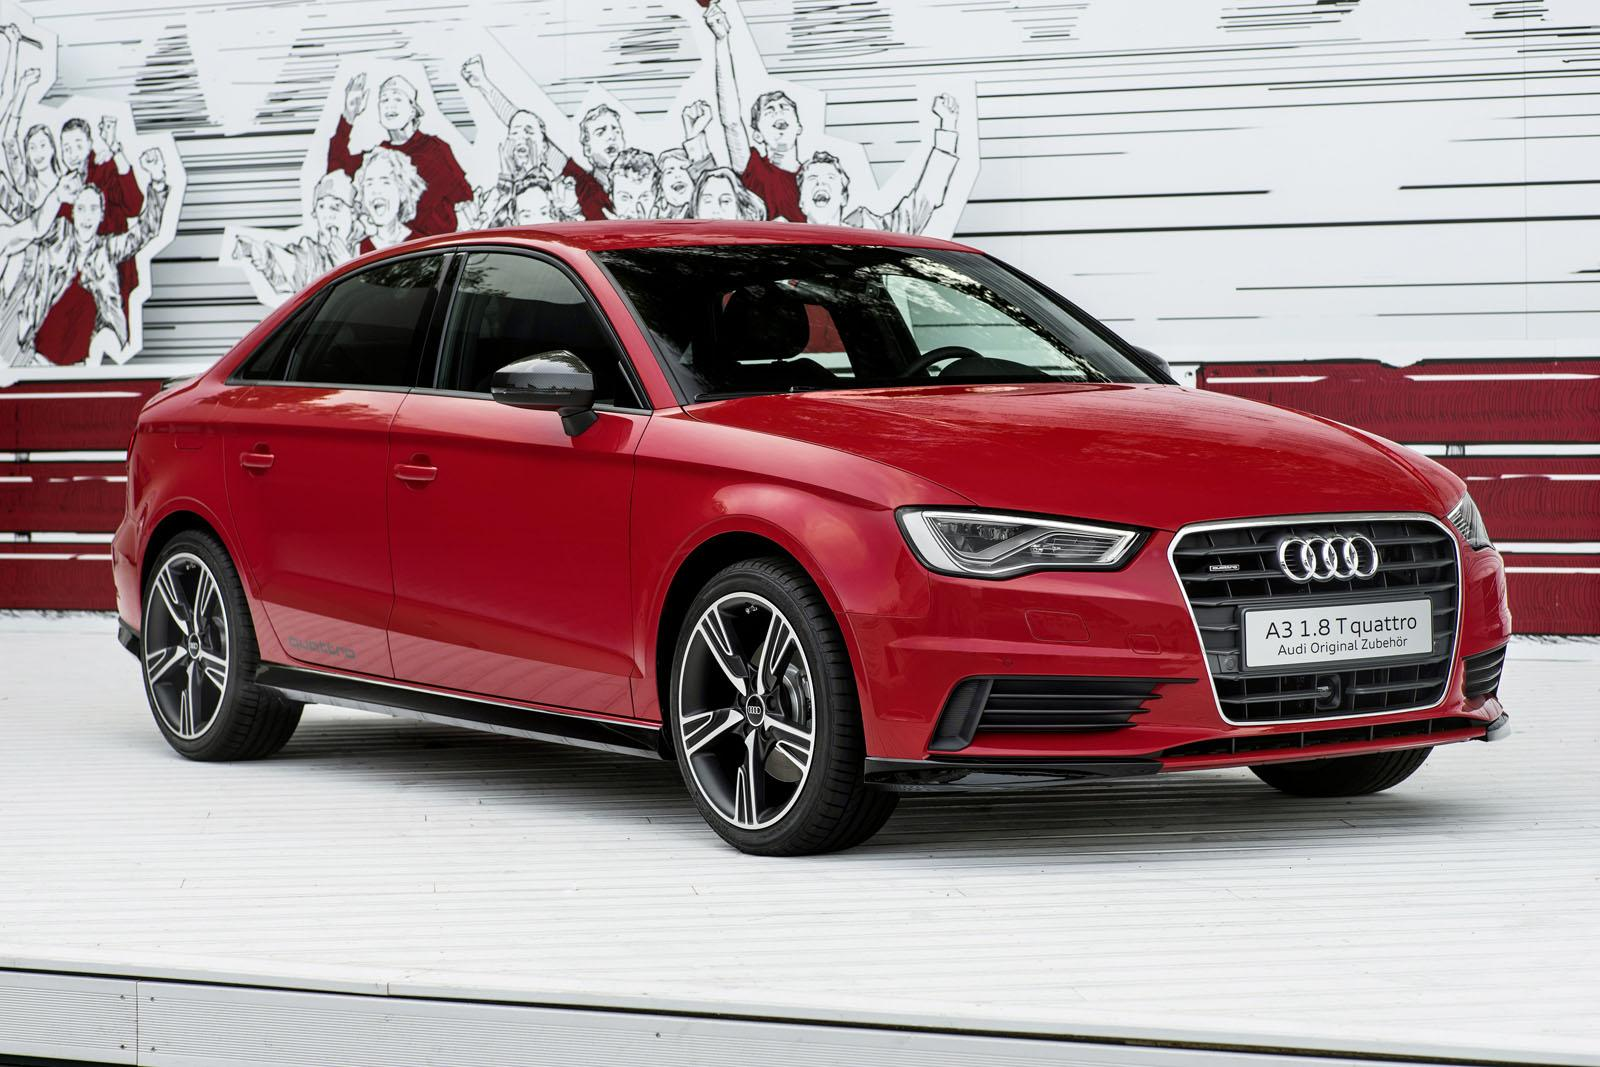 Audi A3 Sedan Price In India Variants Specifications Motoroids